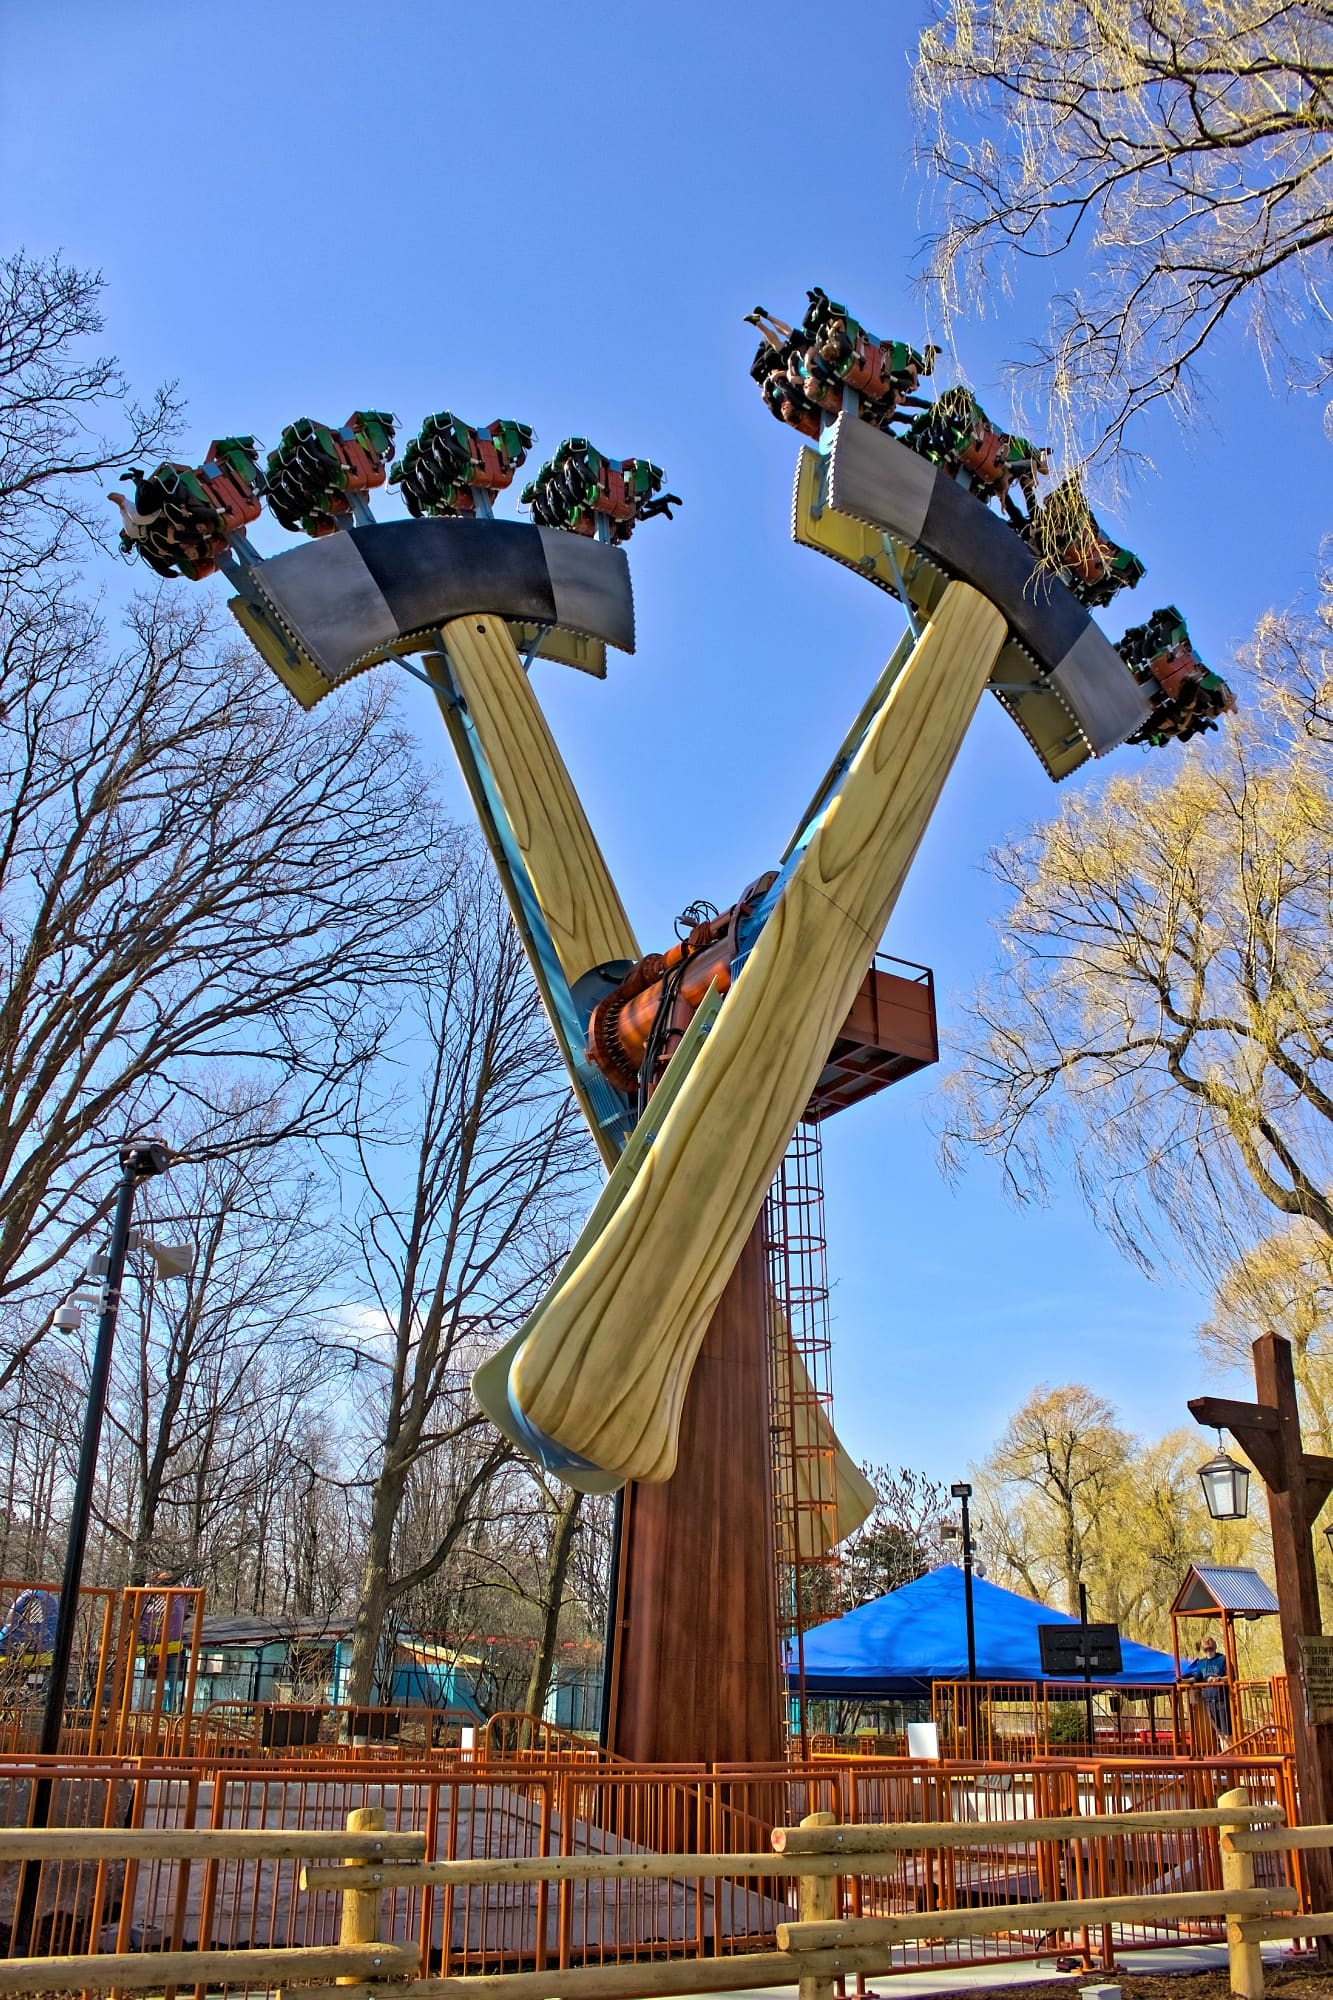 Lumberjack is the newest thrill ride at Canada's Wonderland